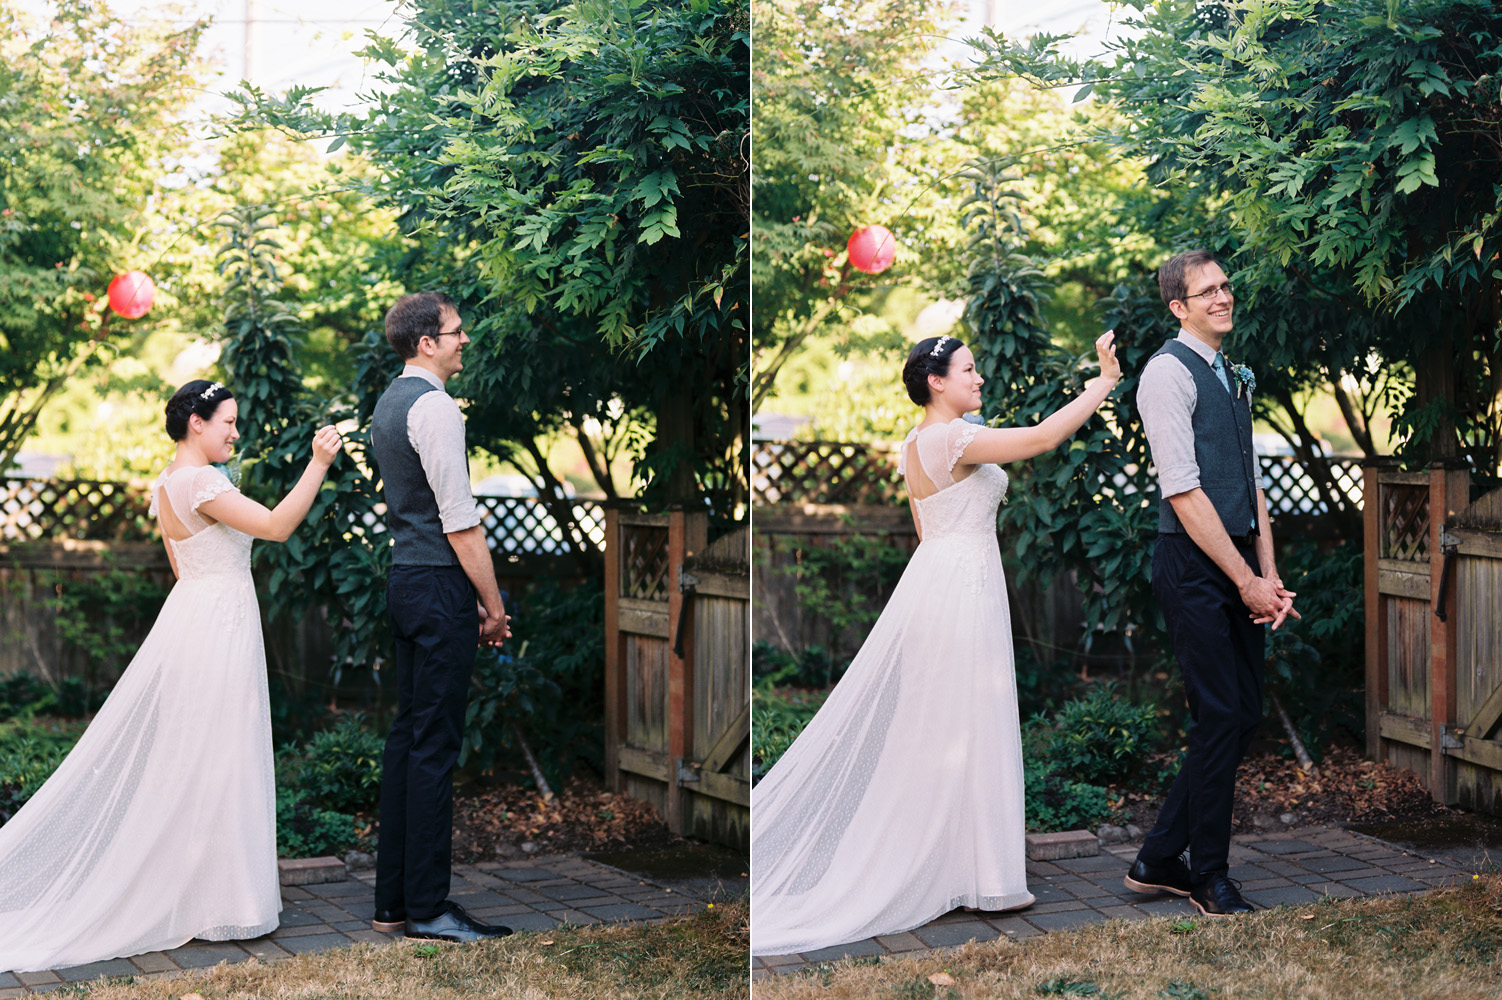 Intimate backyard wedding in Seattle